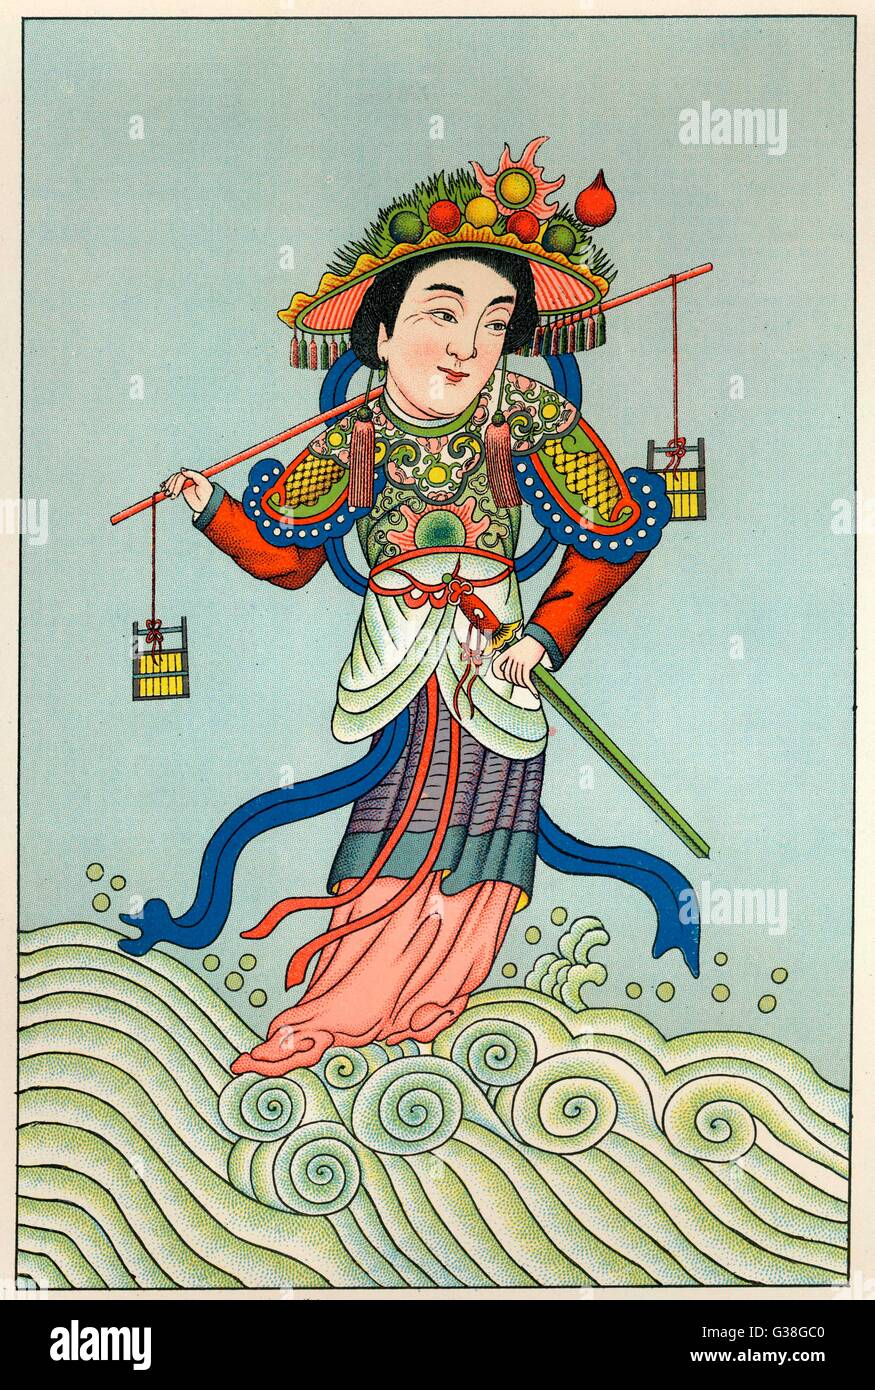 CHOEI-MOU-NIANG-NIANG goddess of water         Date: 1915 - Stock Image